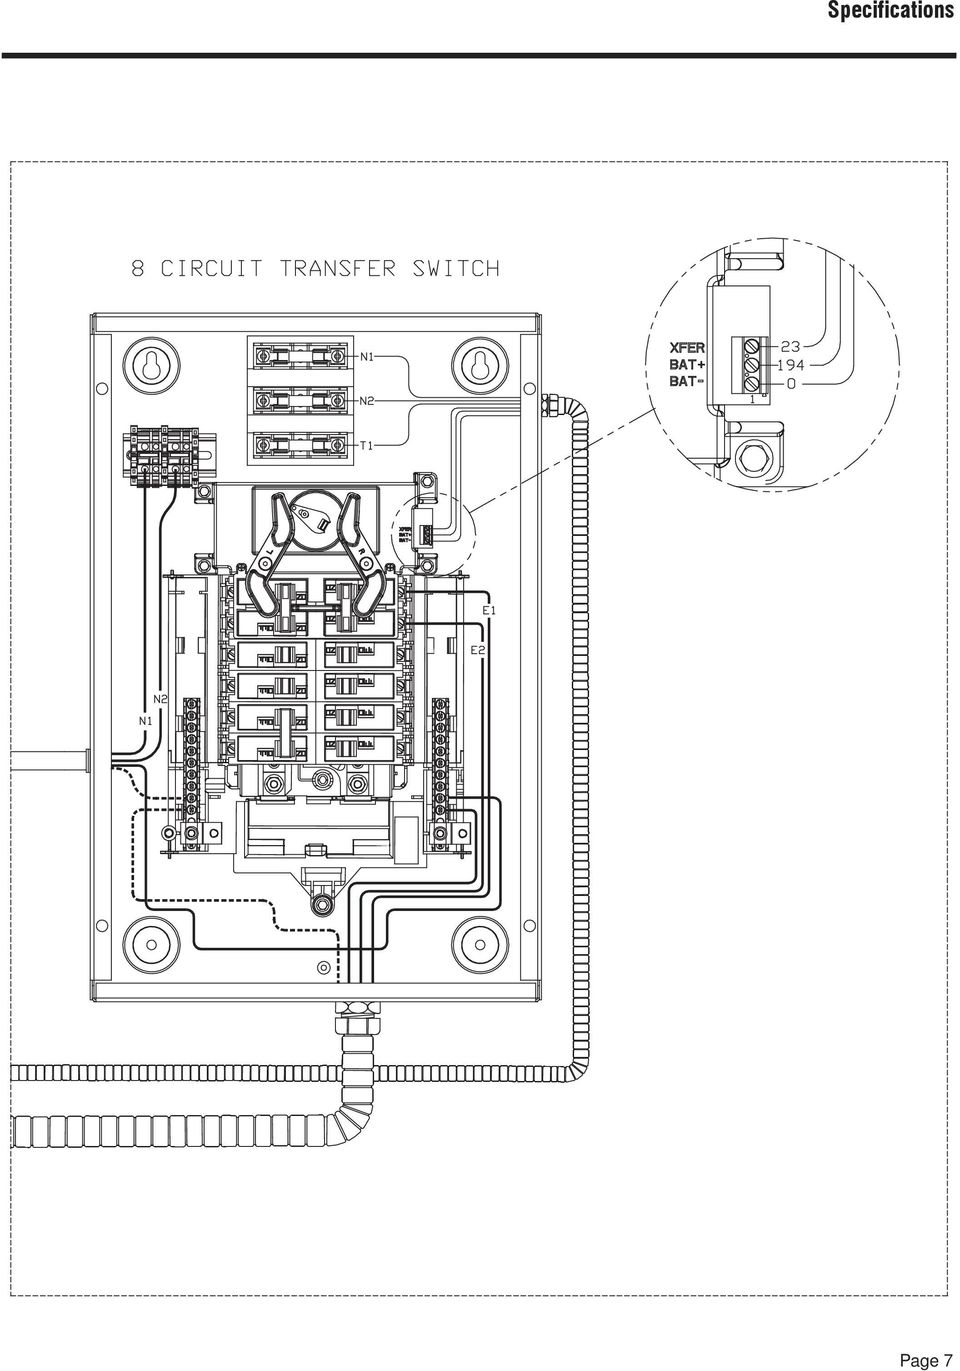 Corepower Home Standby Generator Pdf Diagram Also 240v Step Down Transformer Wiring On Gp5500 10 Notes Page 8